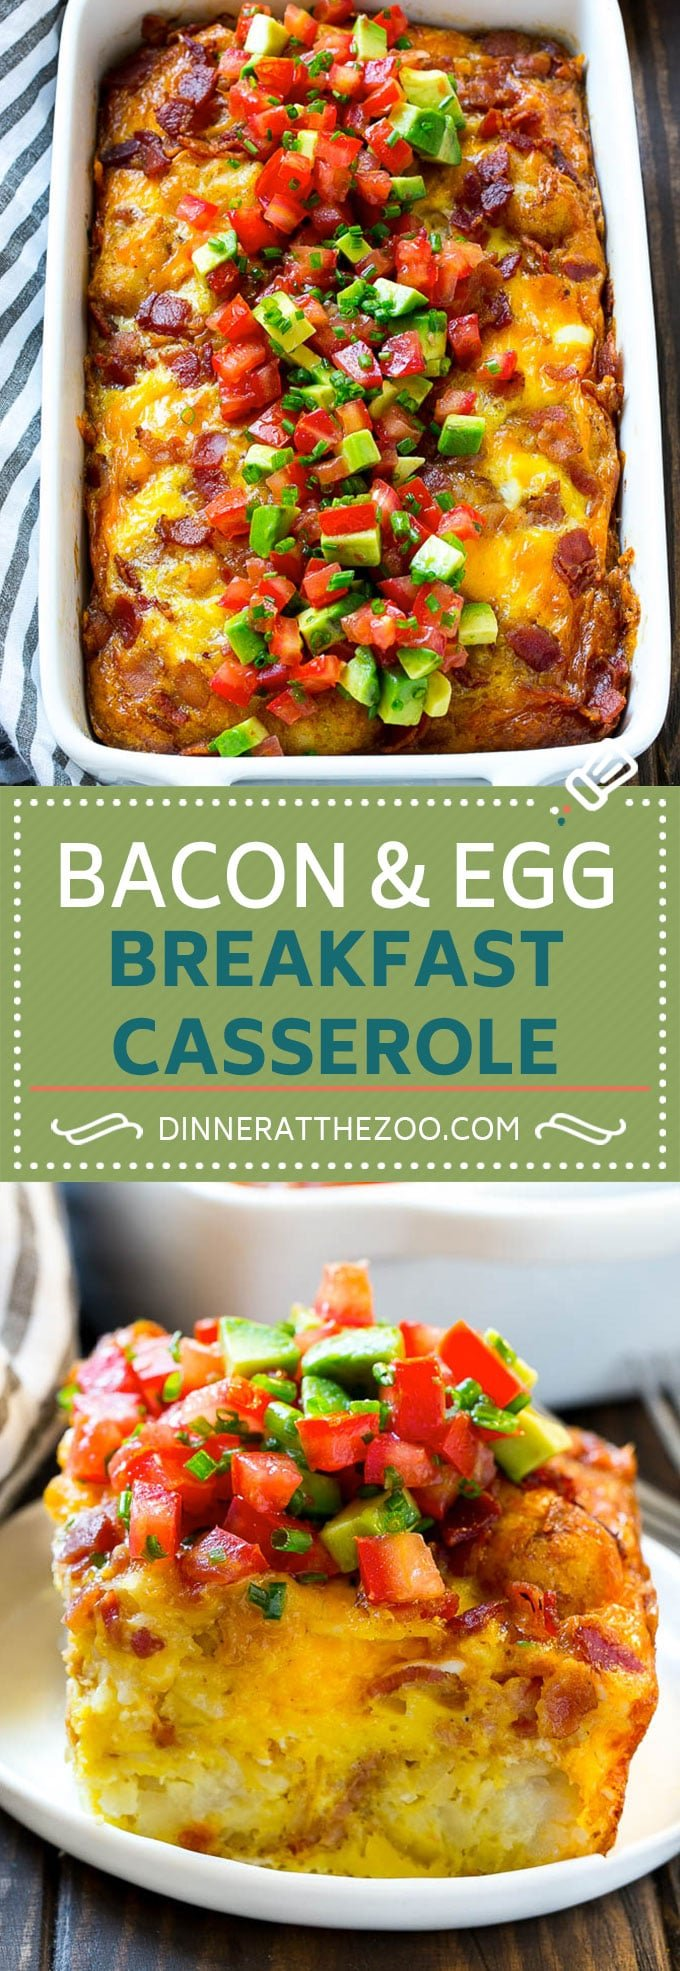 Breakfast Casserole with Bacon Recipe | Bacon and Egg Casserole | Egg Casserole with Bacon | Bacon Breakfast Casserole